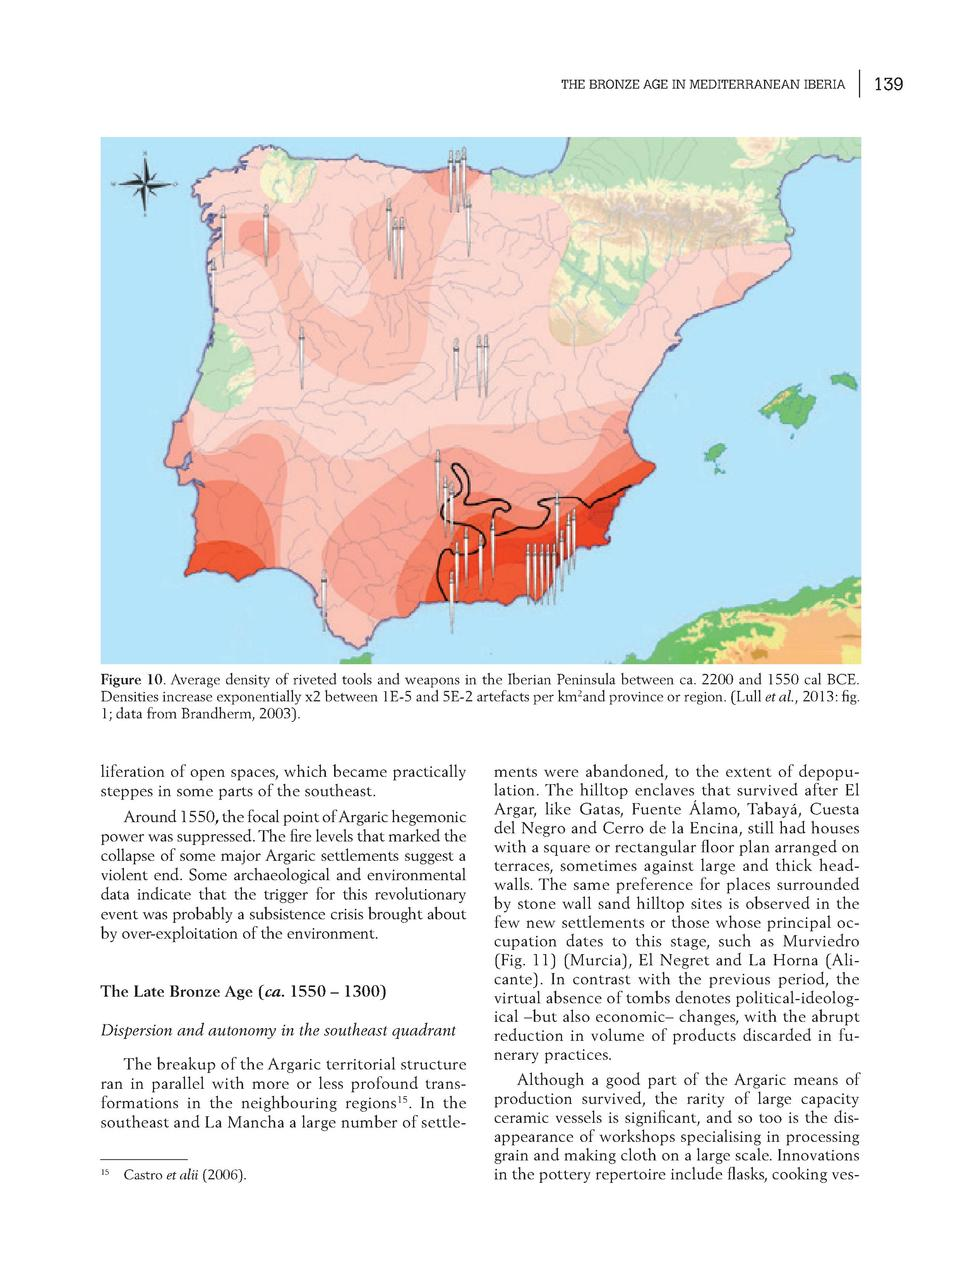 THE BRONZE AGE IN MEDITERRANEAN IBERIA  Figure 10. Average density of riveted tools and weapons in the Iberian Peninsula b...